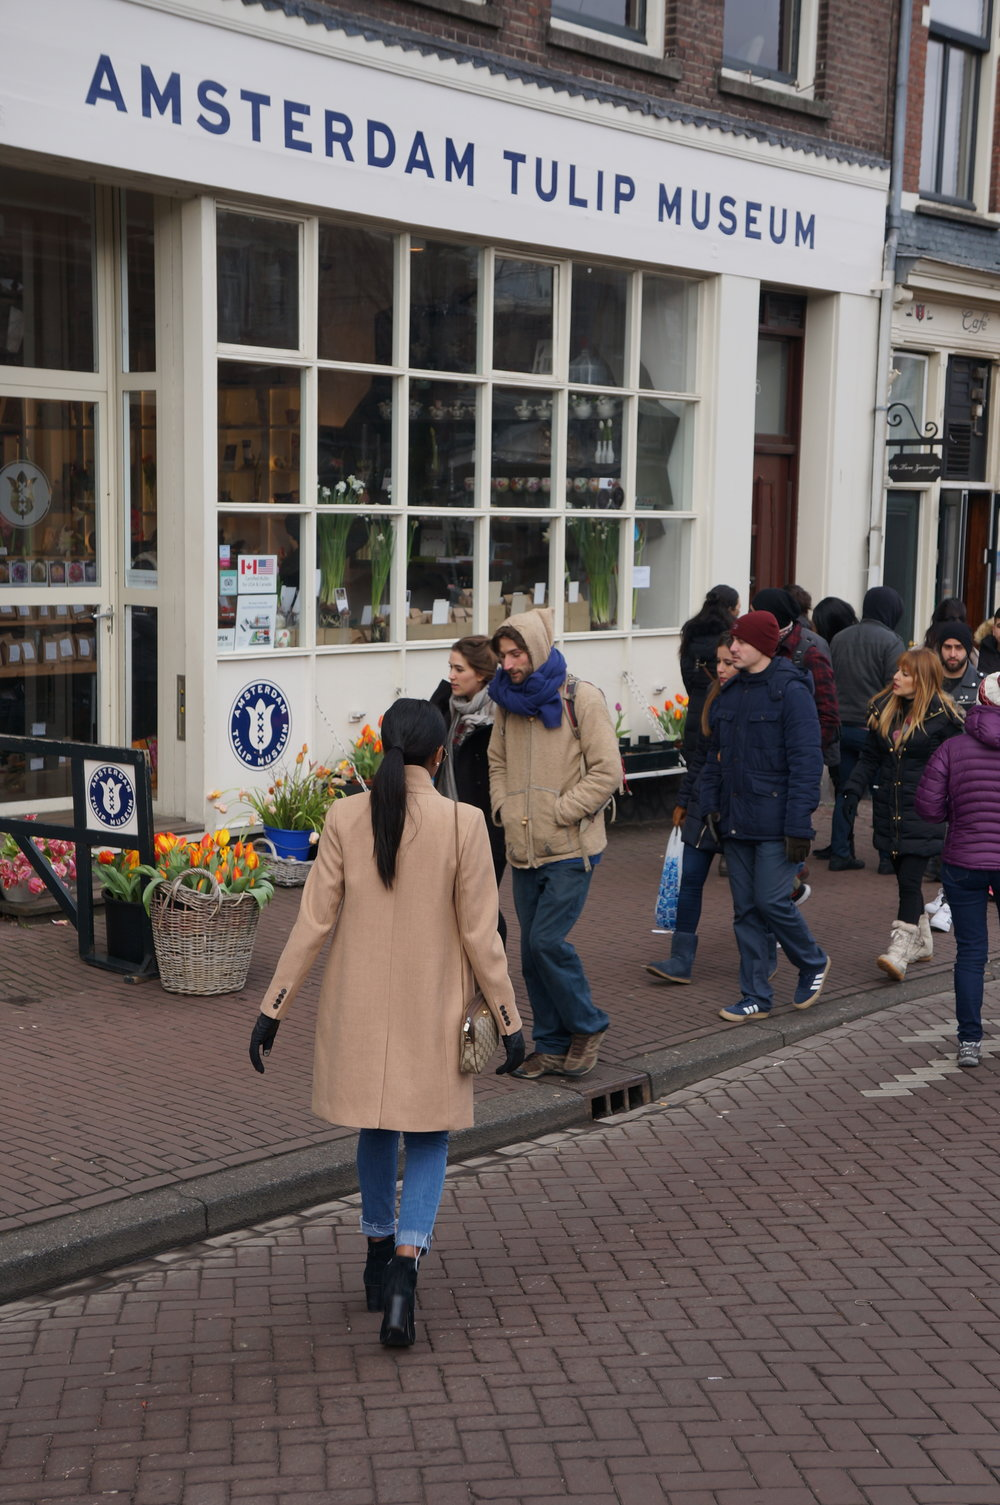 THE NETHERLANDS ARE FAMOUS FOR THEIR TULIPS - AND HERE YOU CAN PICK UP TULIPS THAT ARE APPROVED BY US AGRICULTURE TO BRING BACK TO THE UNITED STATES!